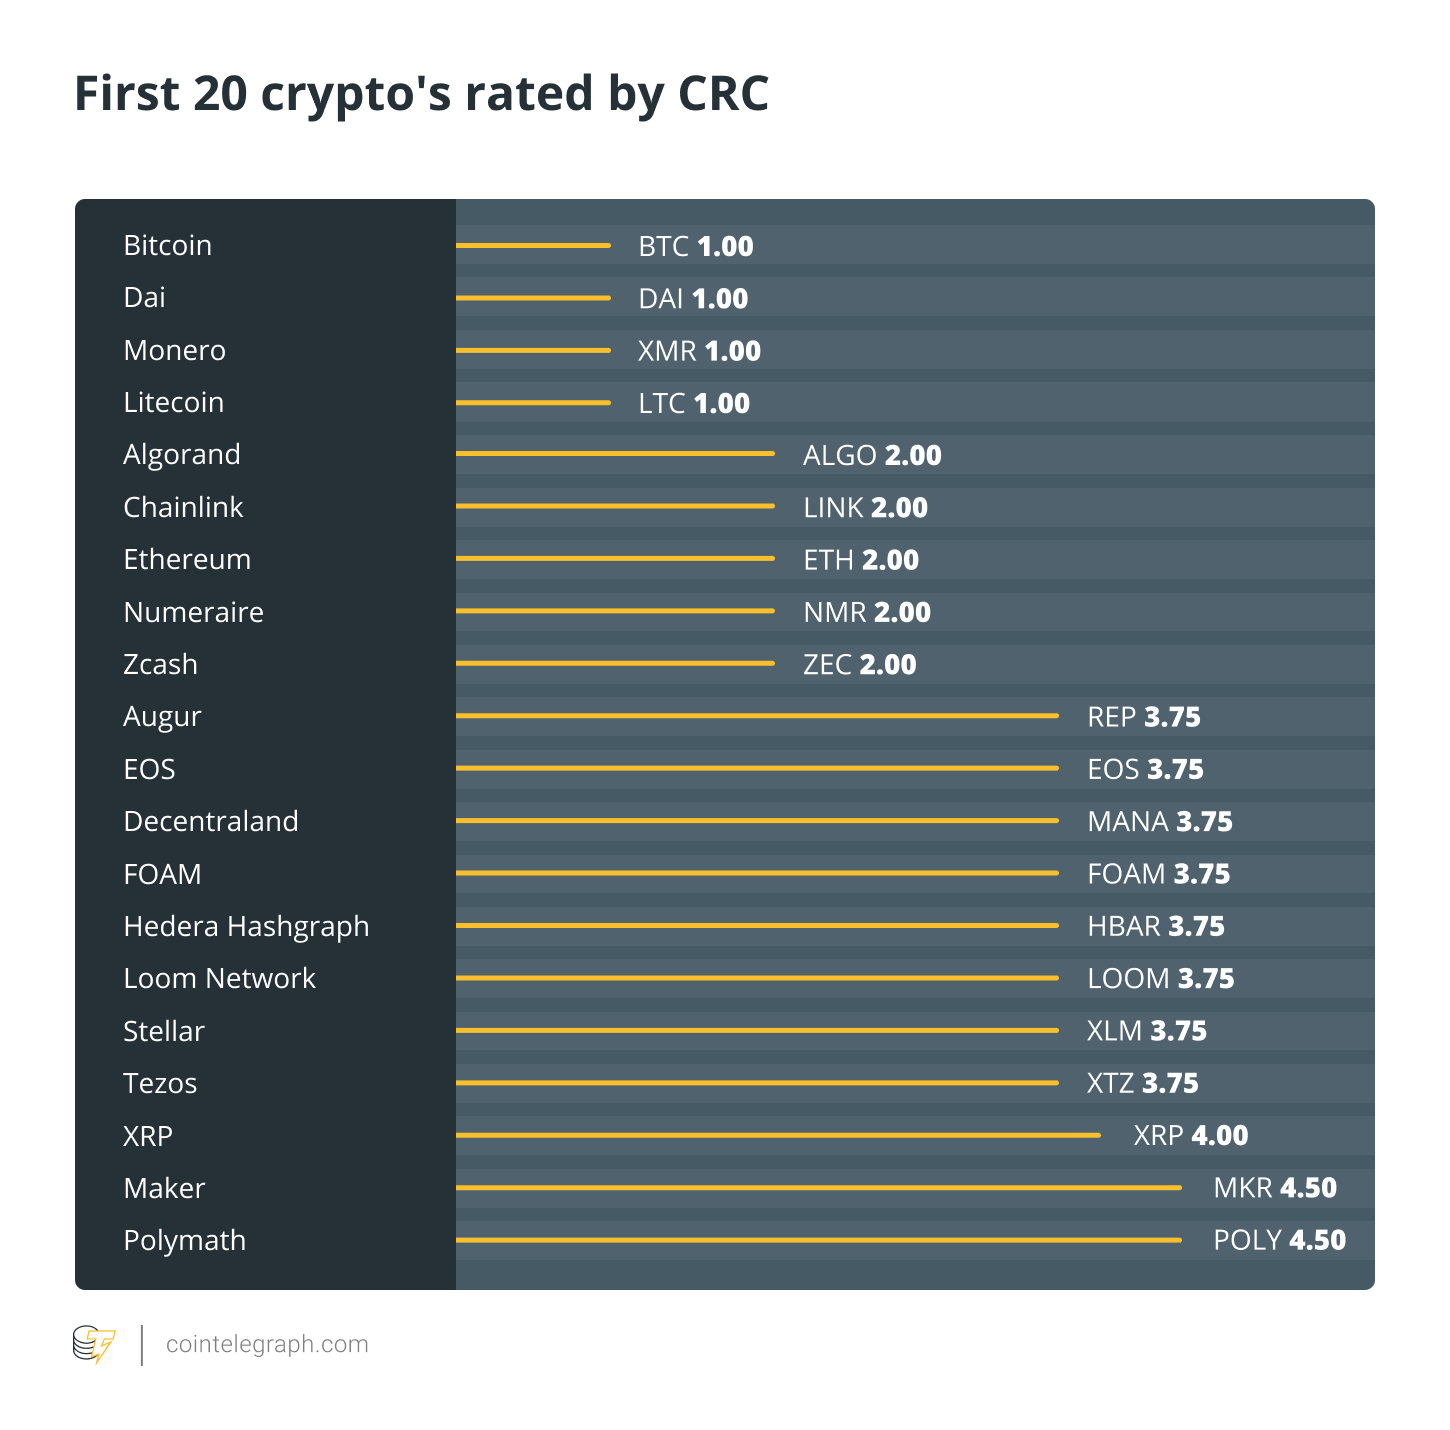 First 20 crypto's rated by CRC